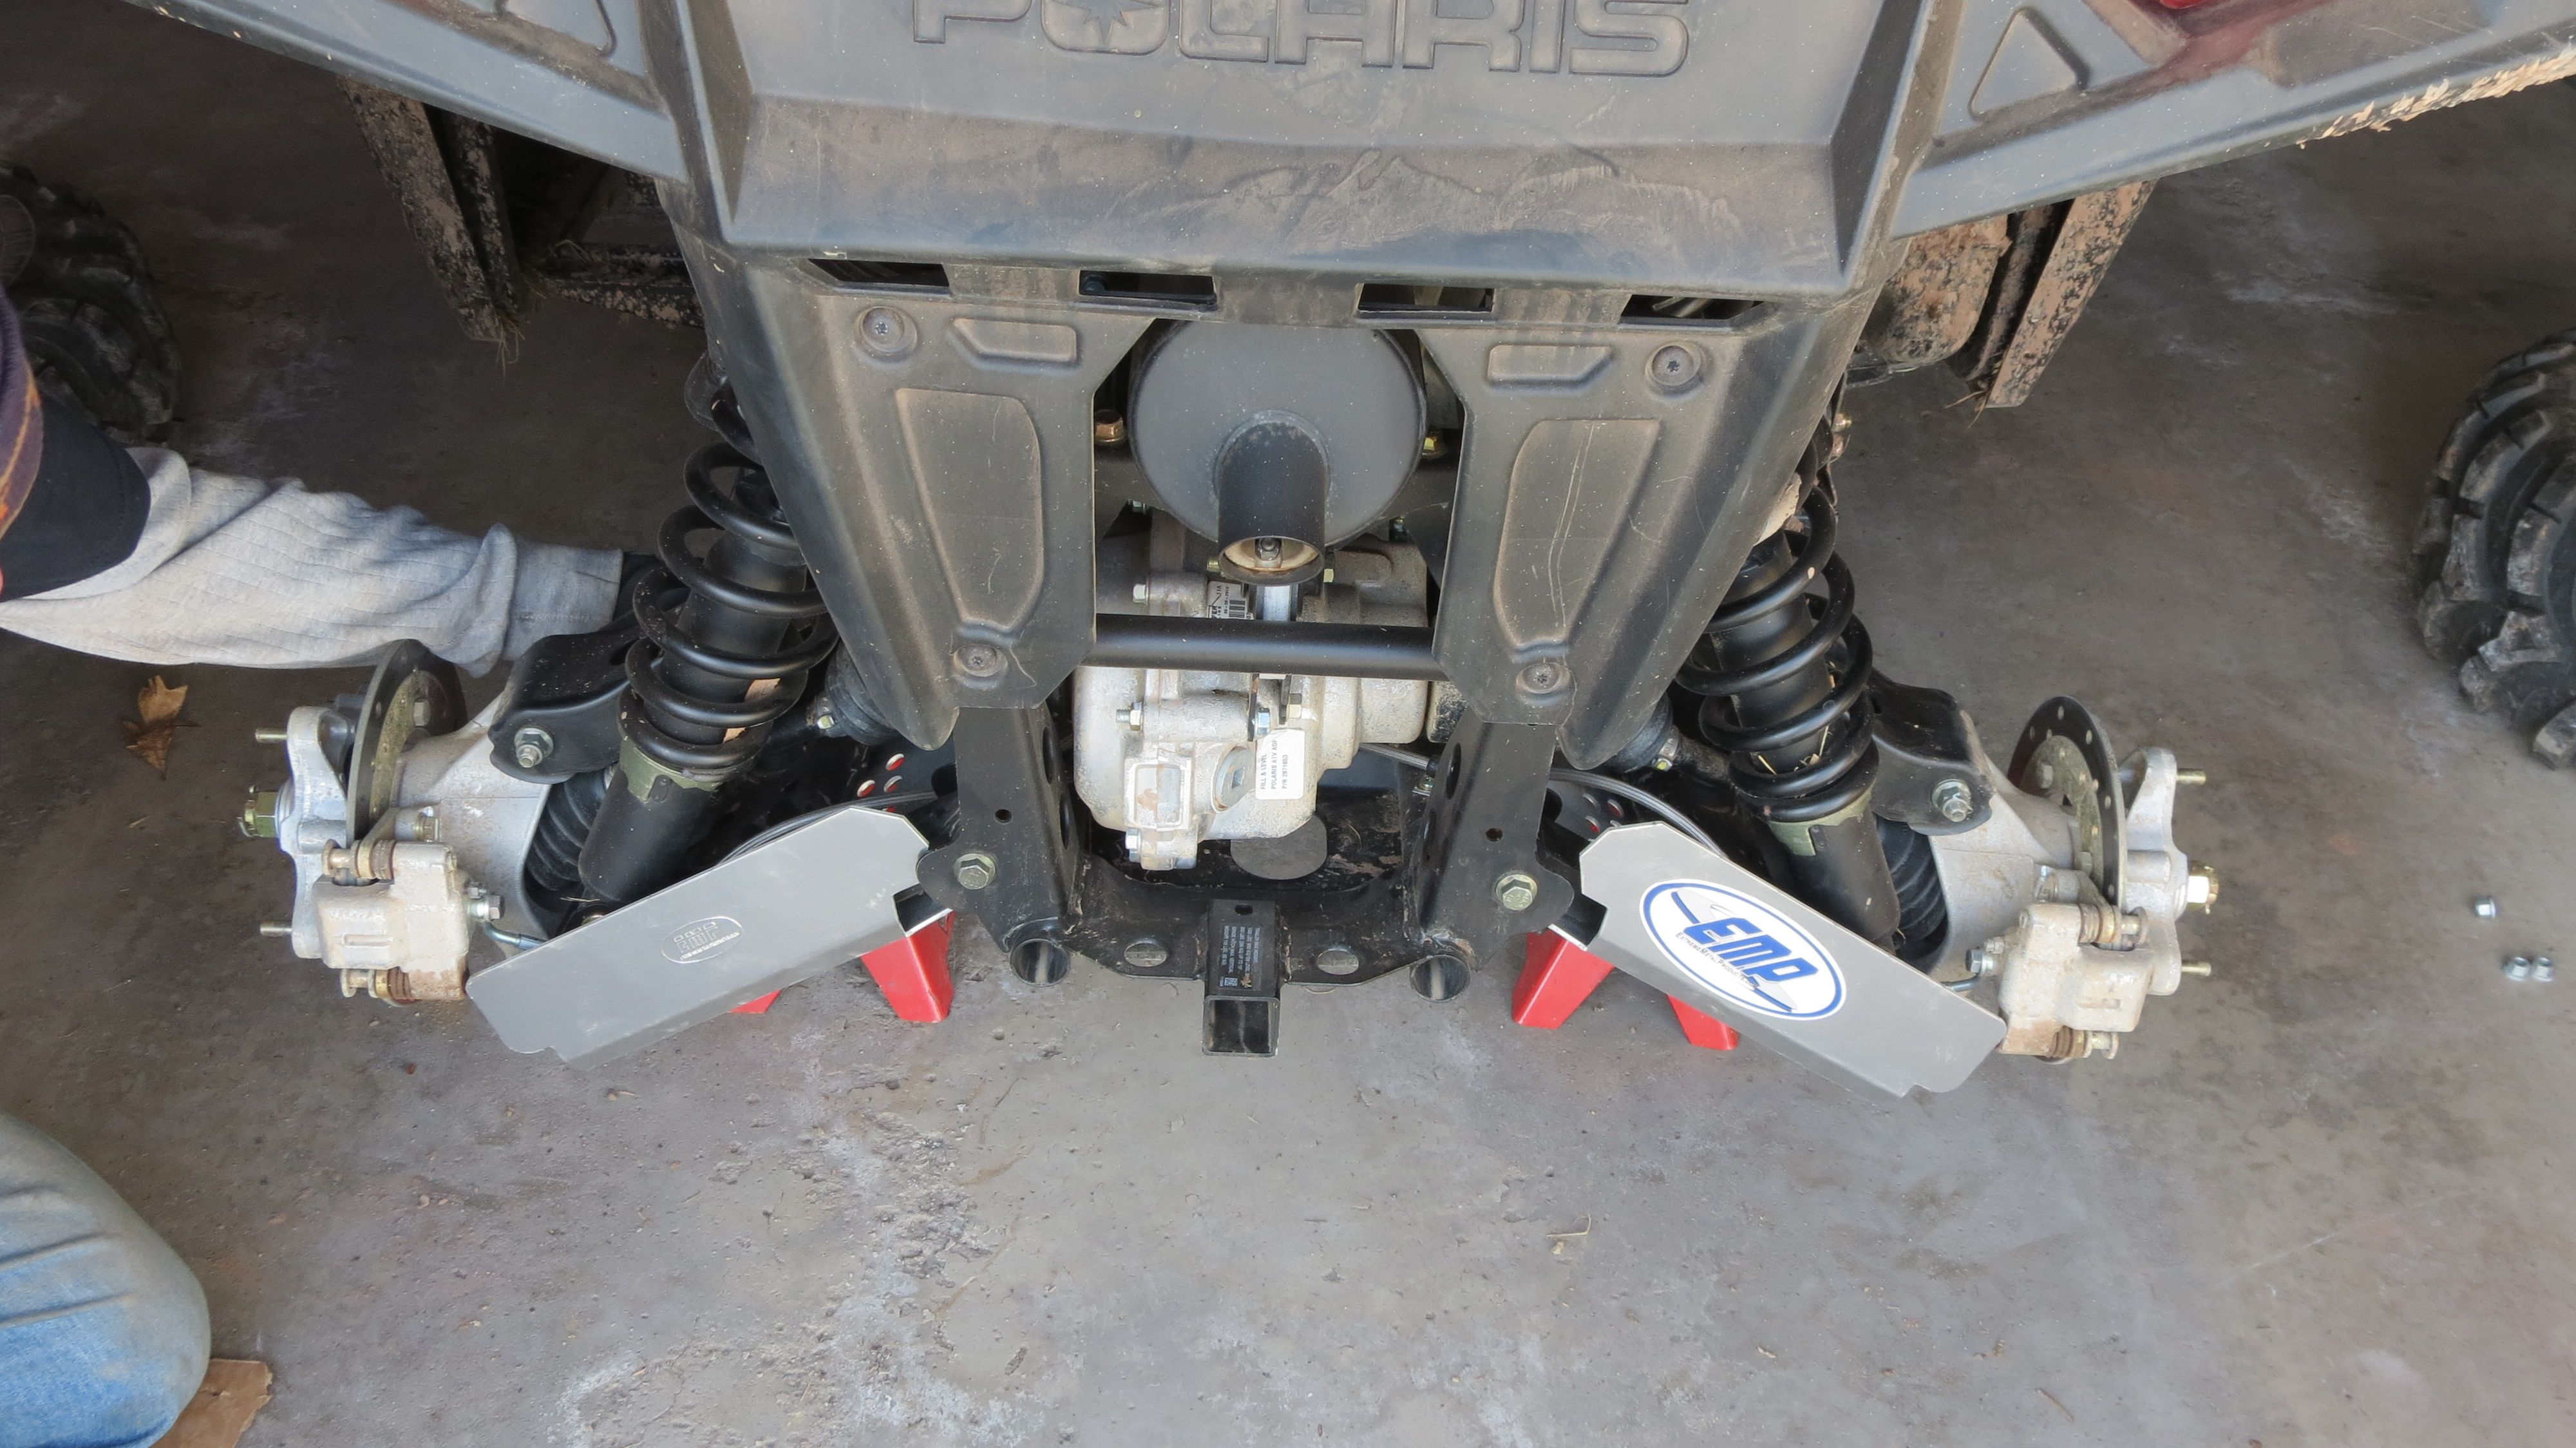 Placement of back cv boot covers Extreme metal, Metal